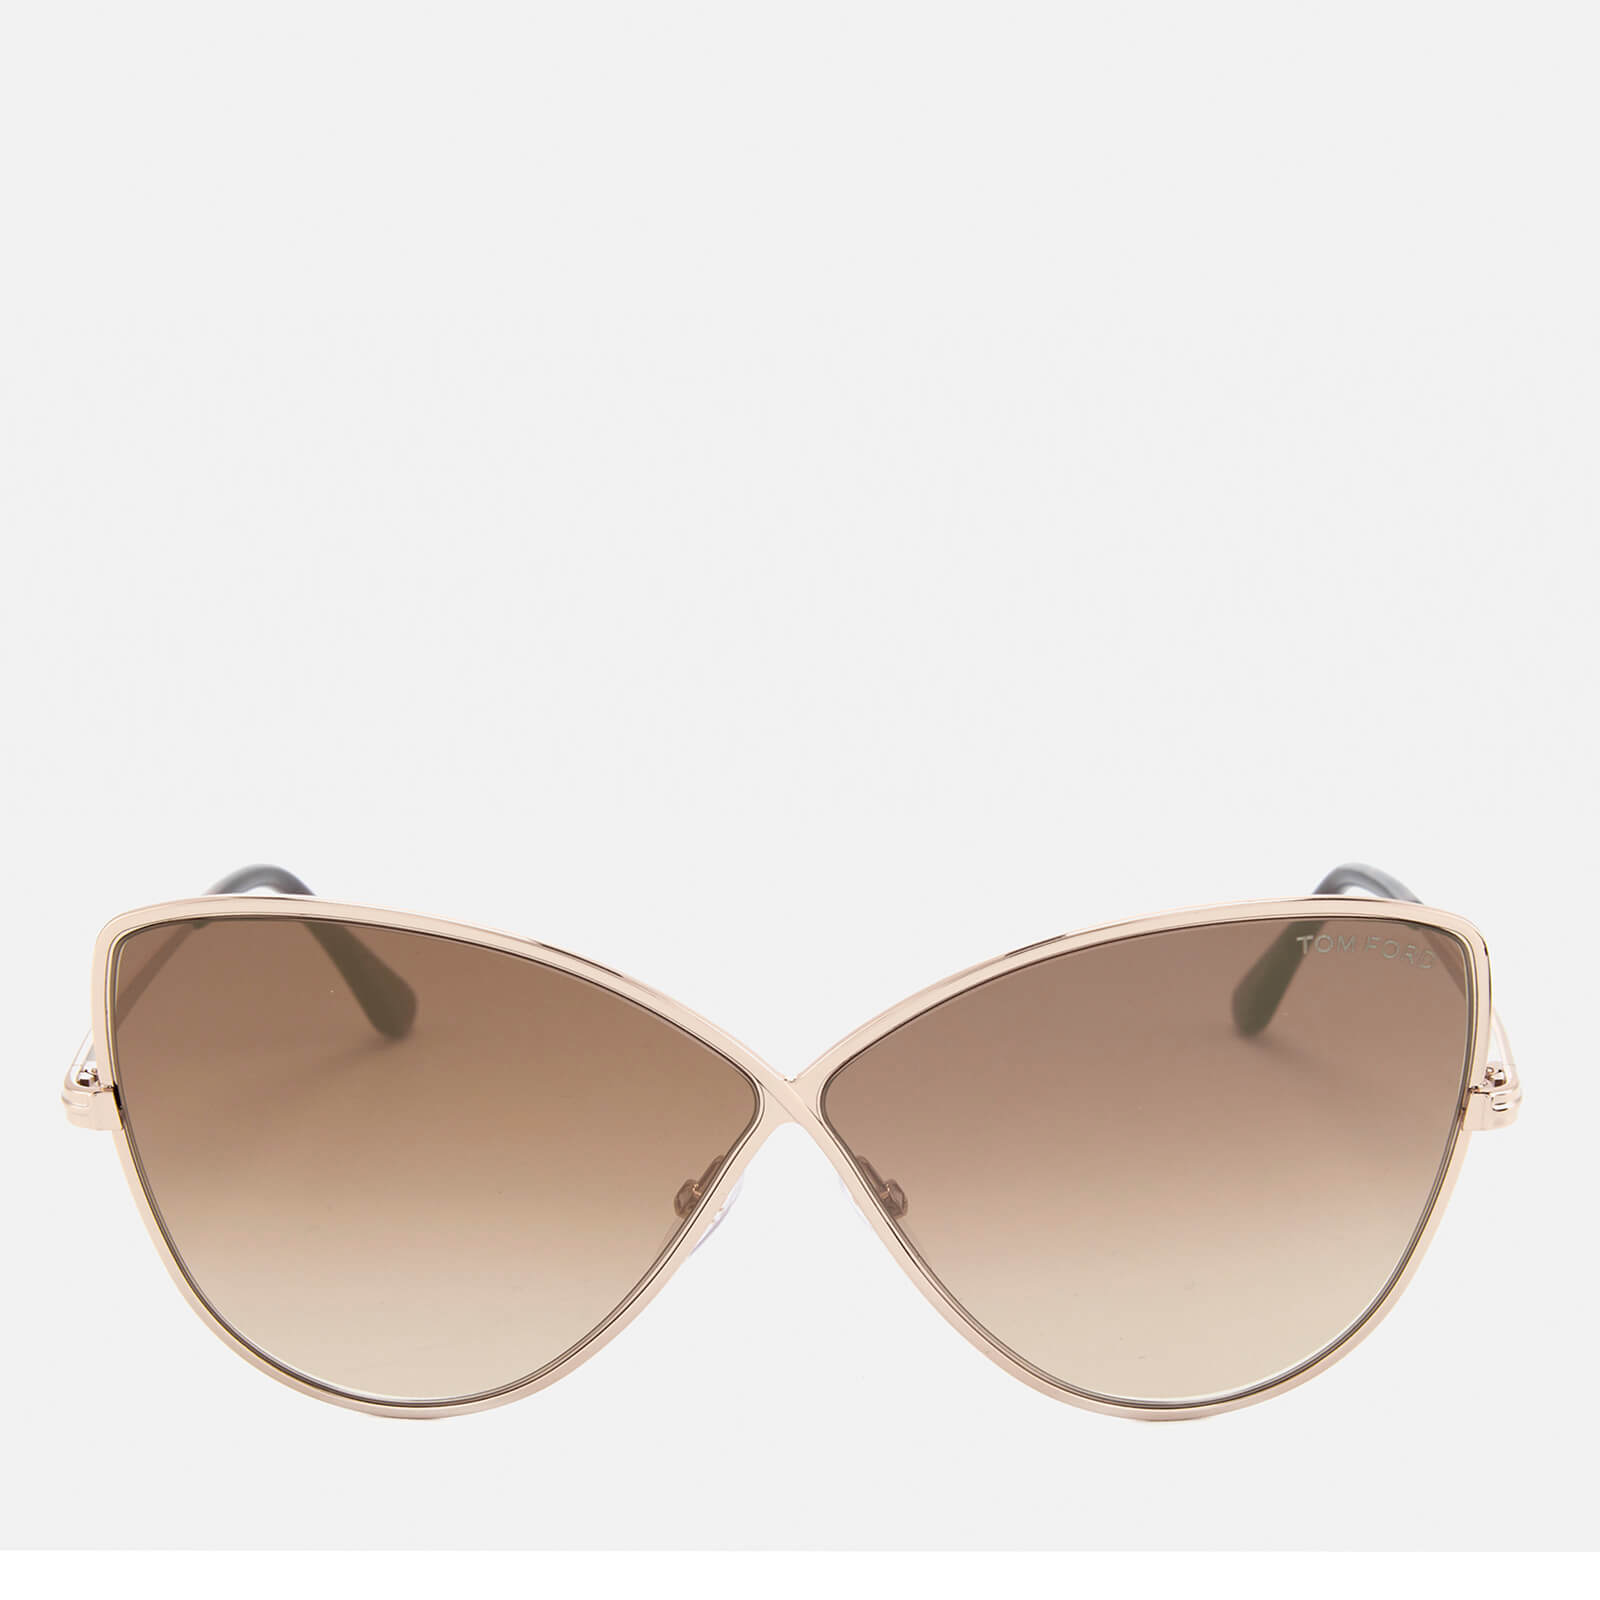 1ed19bf11b6 Tom Ford Women s Elise Butterfly Shape Sunglasses - Rose Gold Brown Mirror